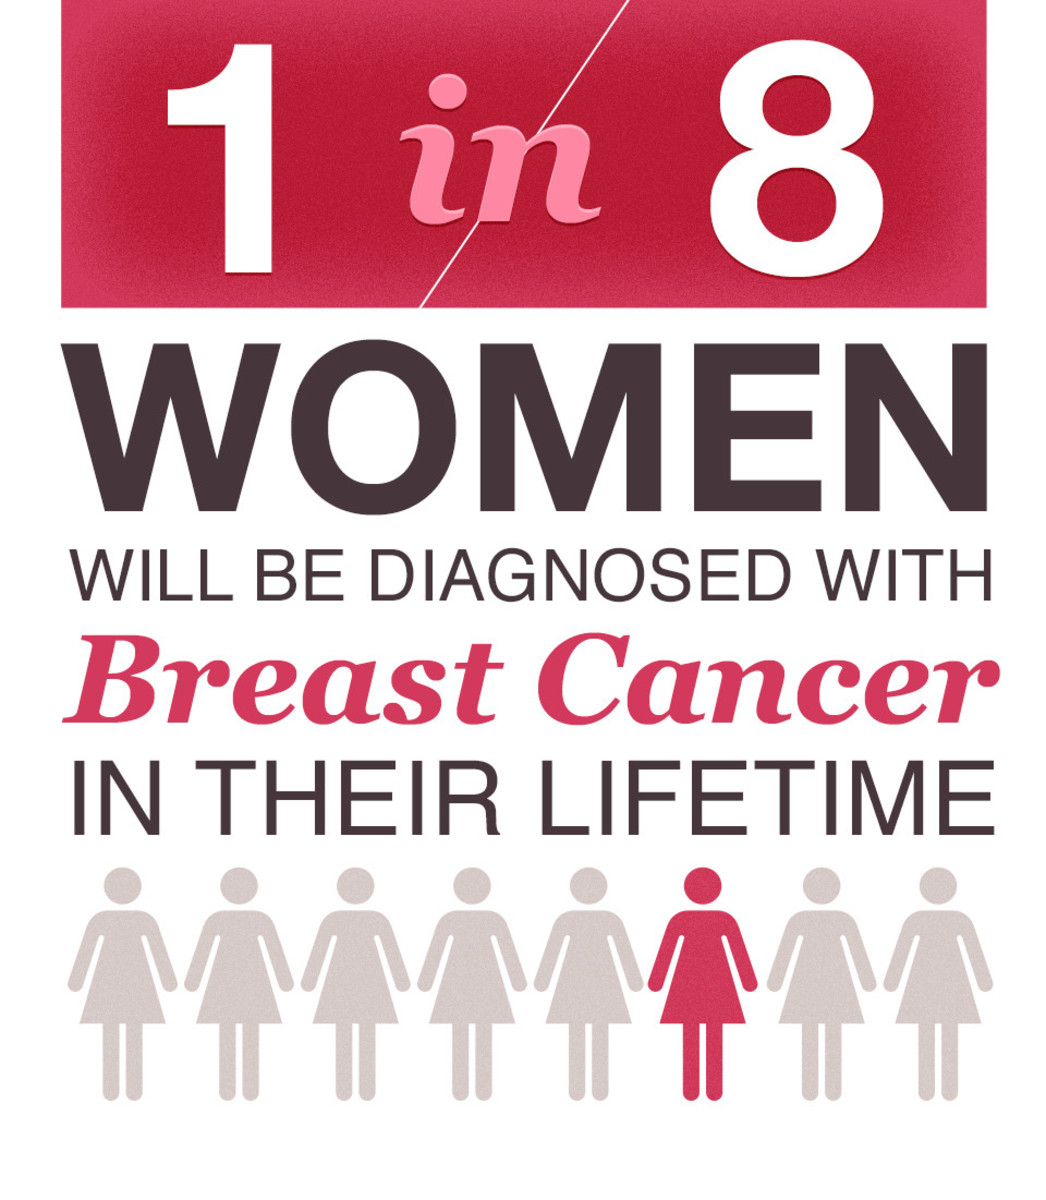 Fact: Although breast cancer in men is rare, an estimated 2,470 men will be diagnosed with breast cancer each year.